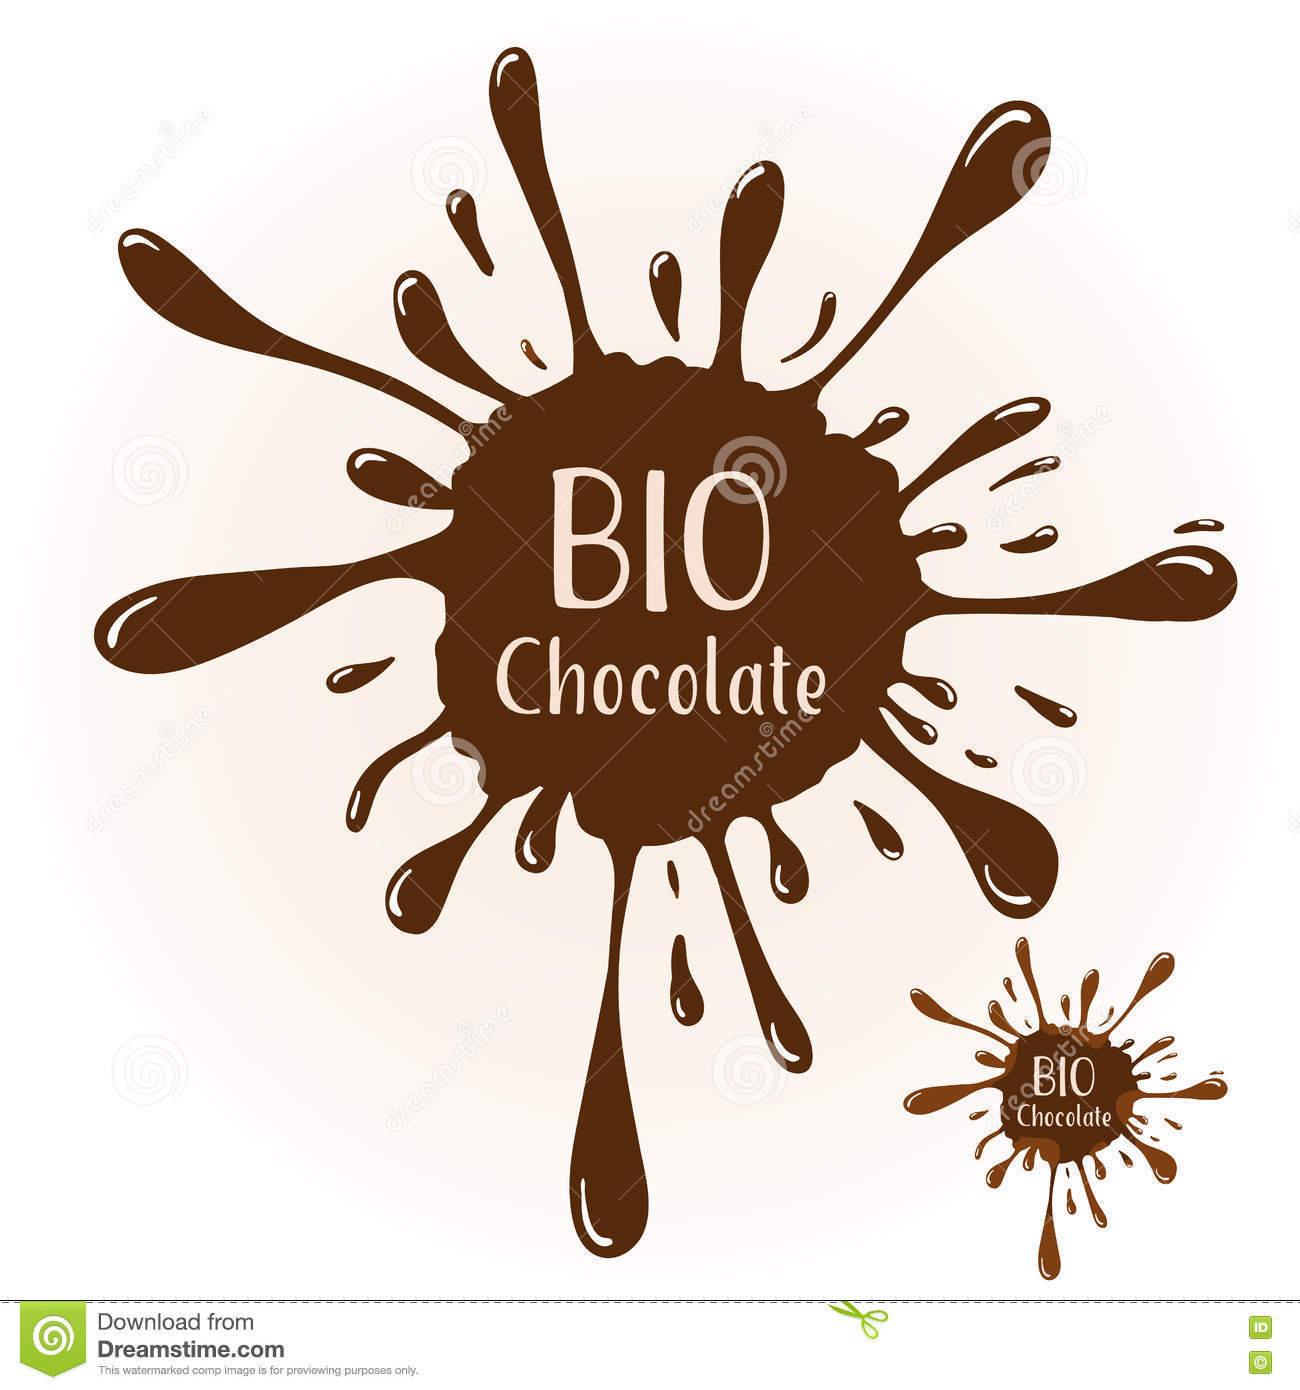 Vector Chocolate Blot With Text BIO Badge Template For Various Use Highlights